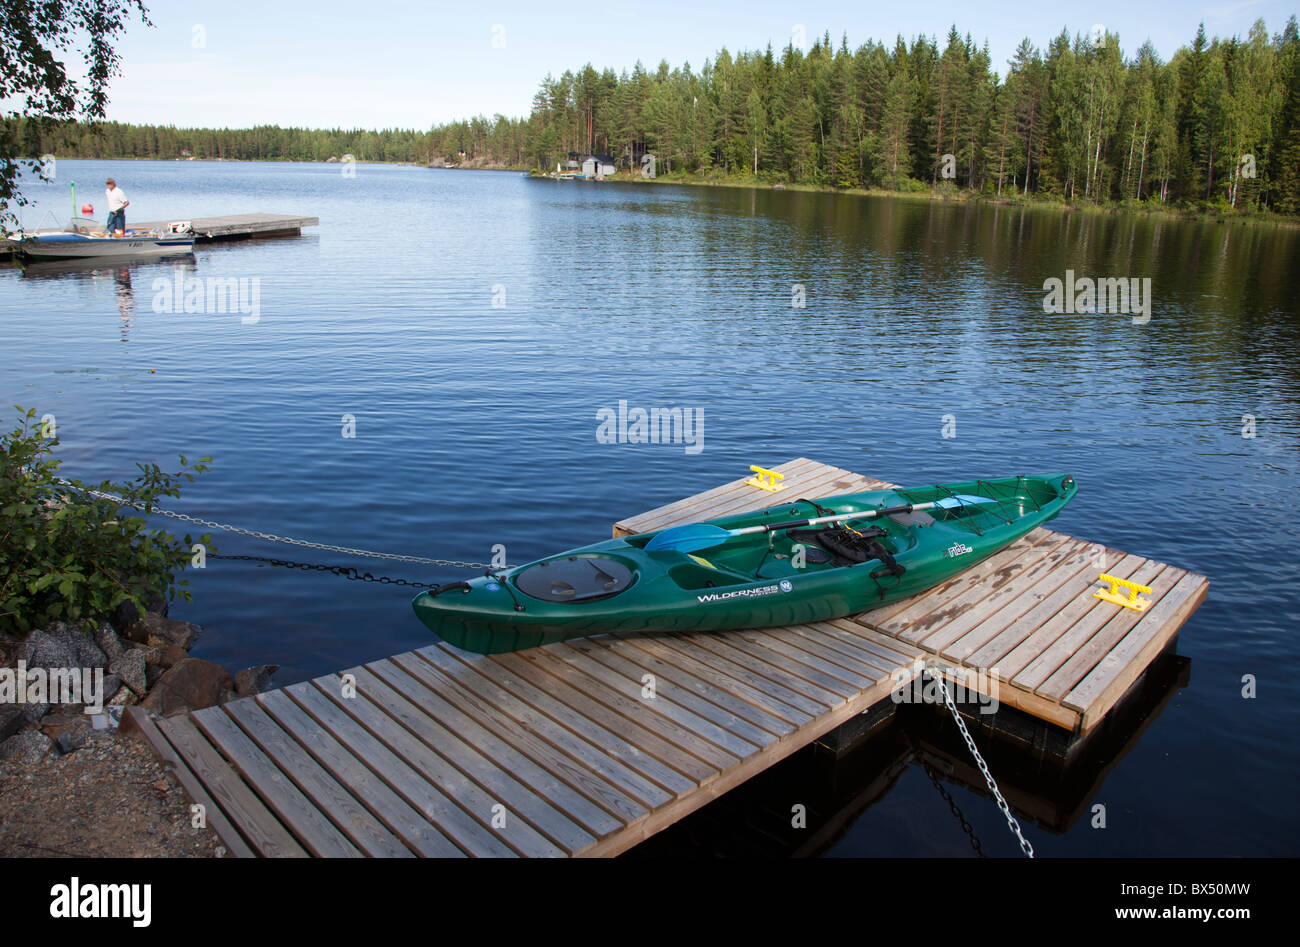 Wilderness Systems Ride 135 sit-on-top kayak beached to a jetty , Finland - Stock Image